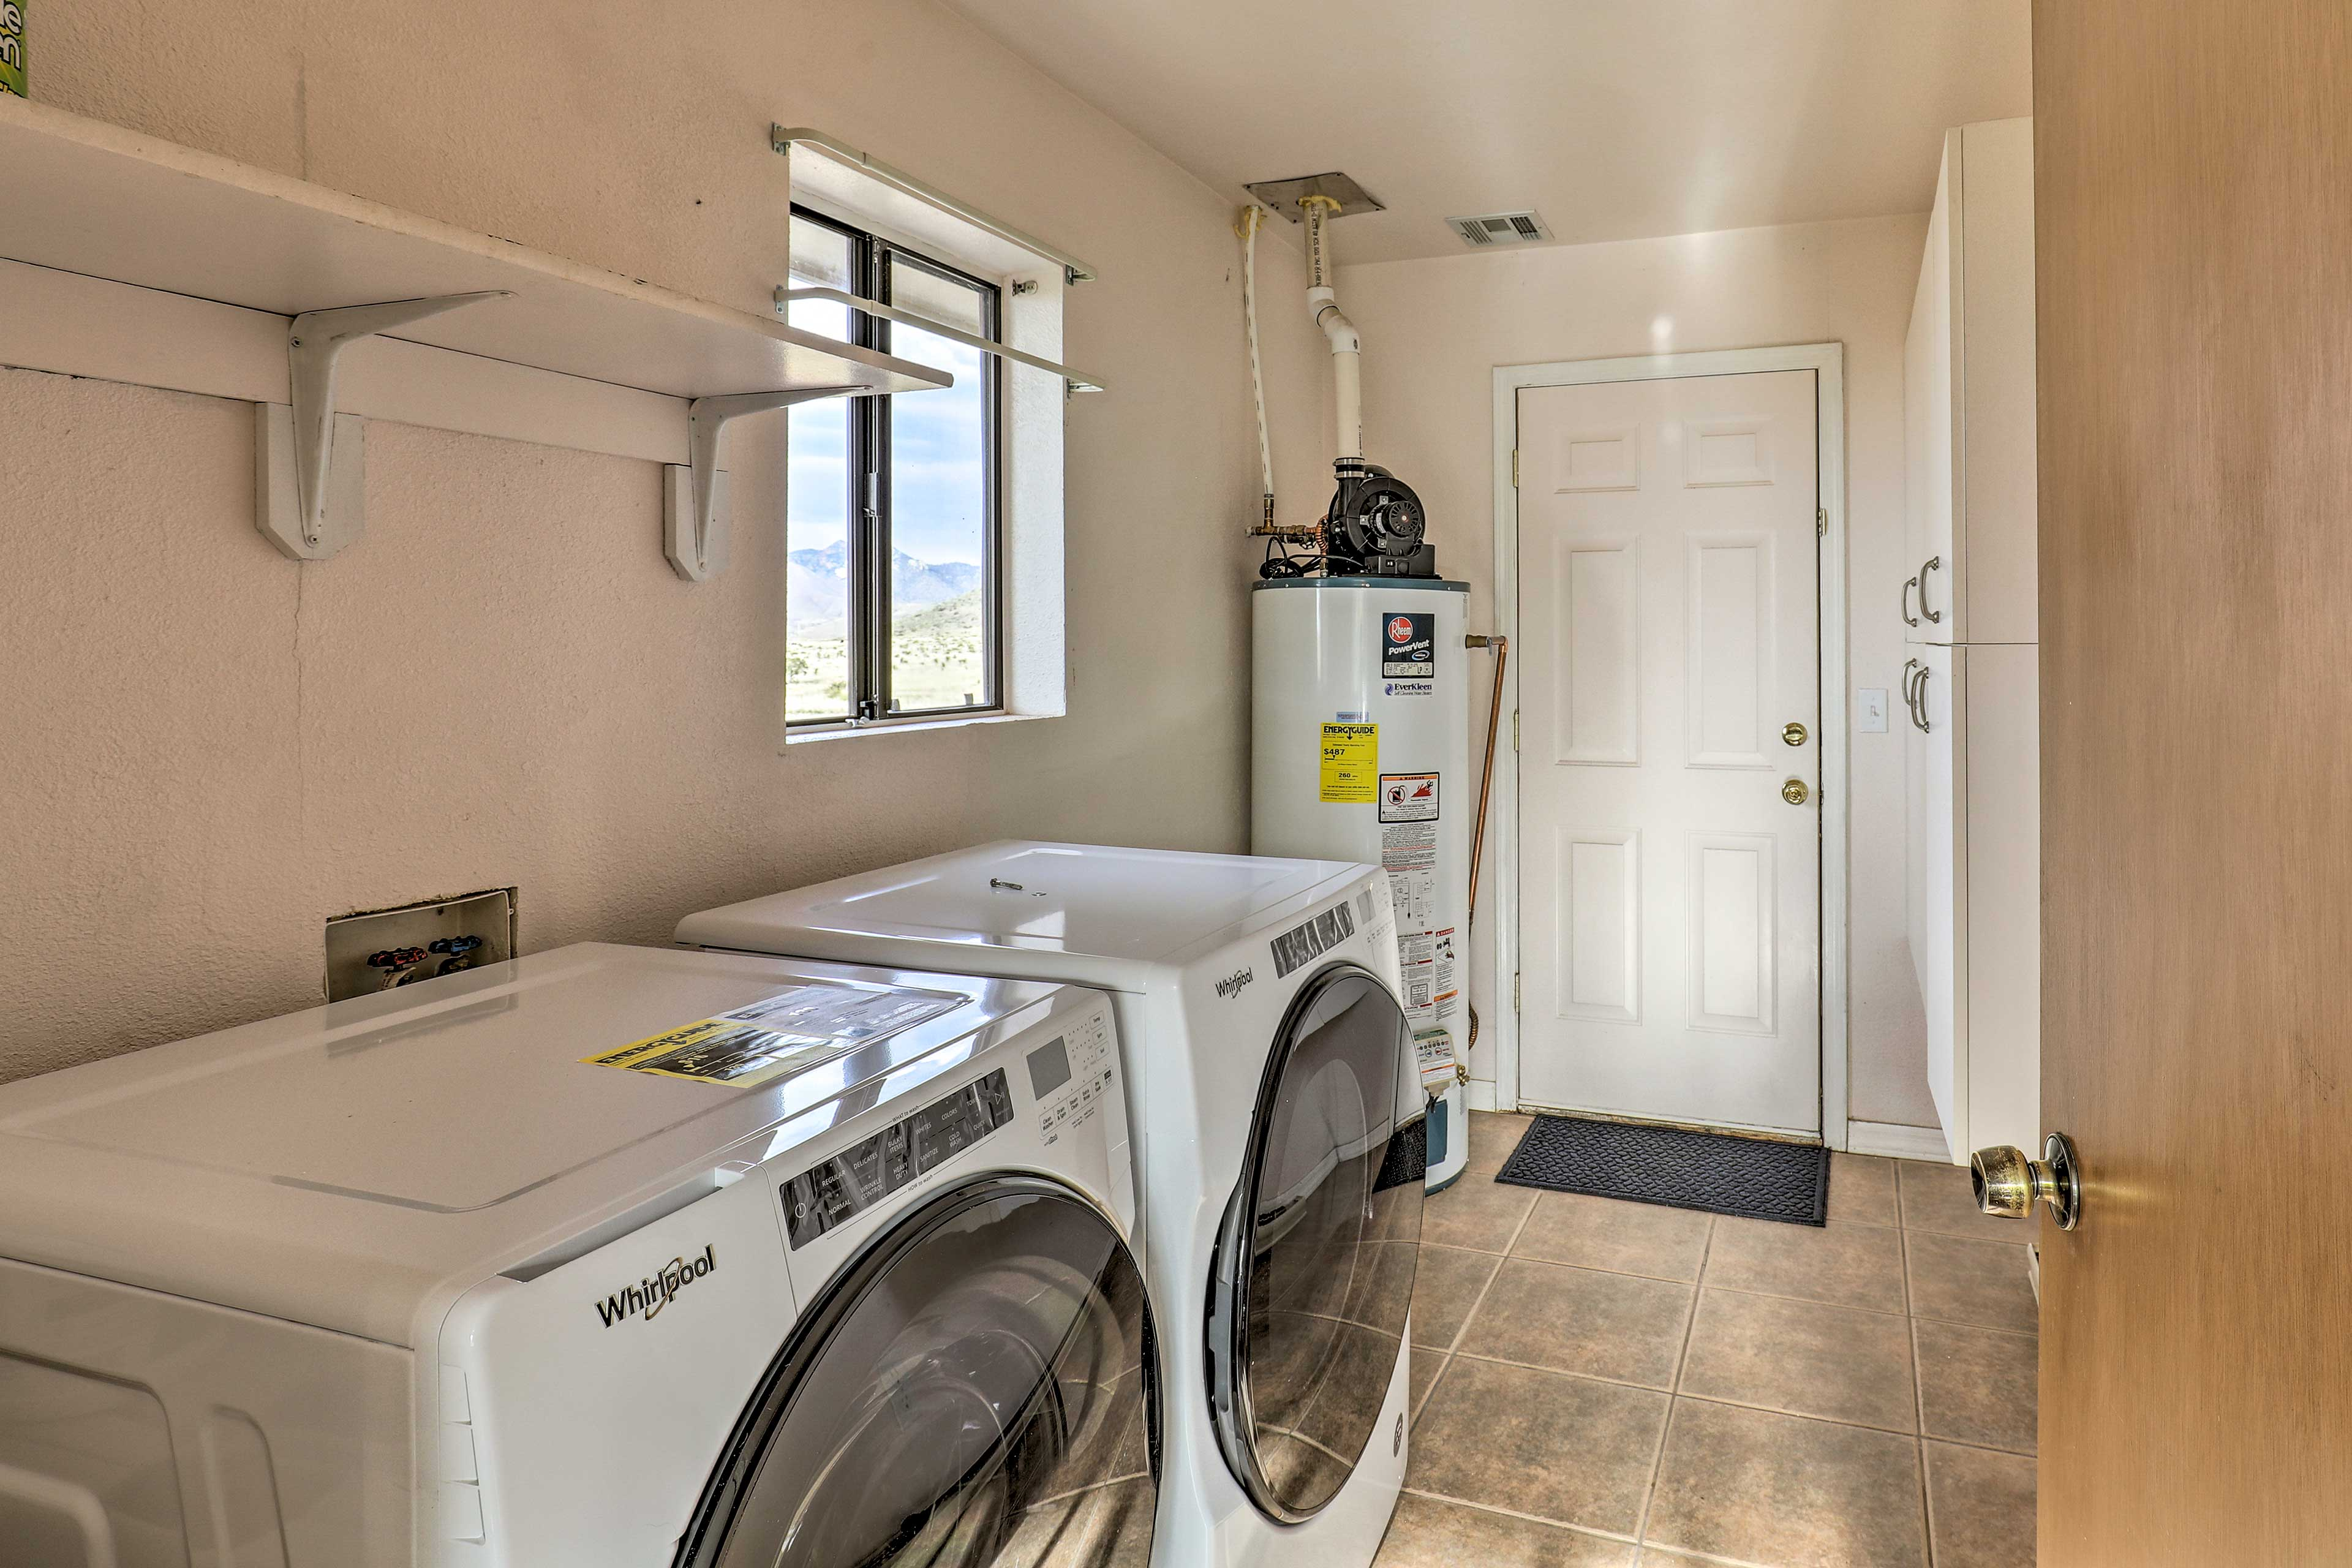 Use the washer and dryer to keep your clothes smelling fresh during your trip.